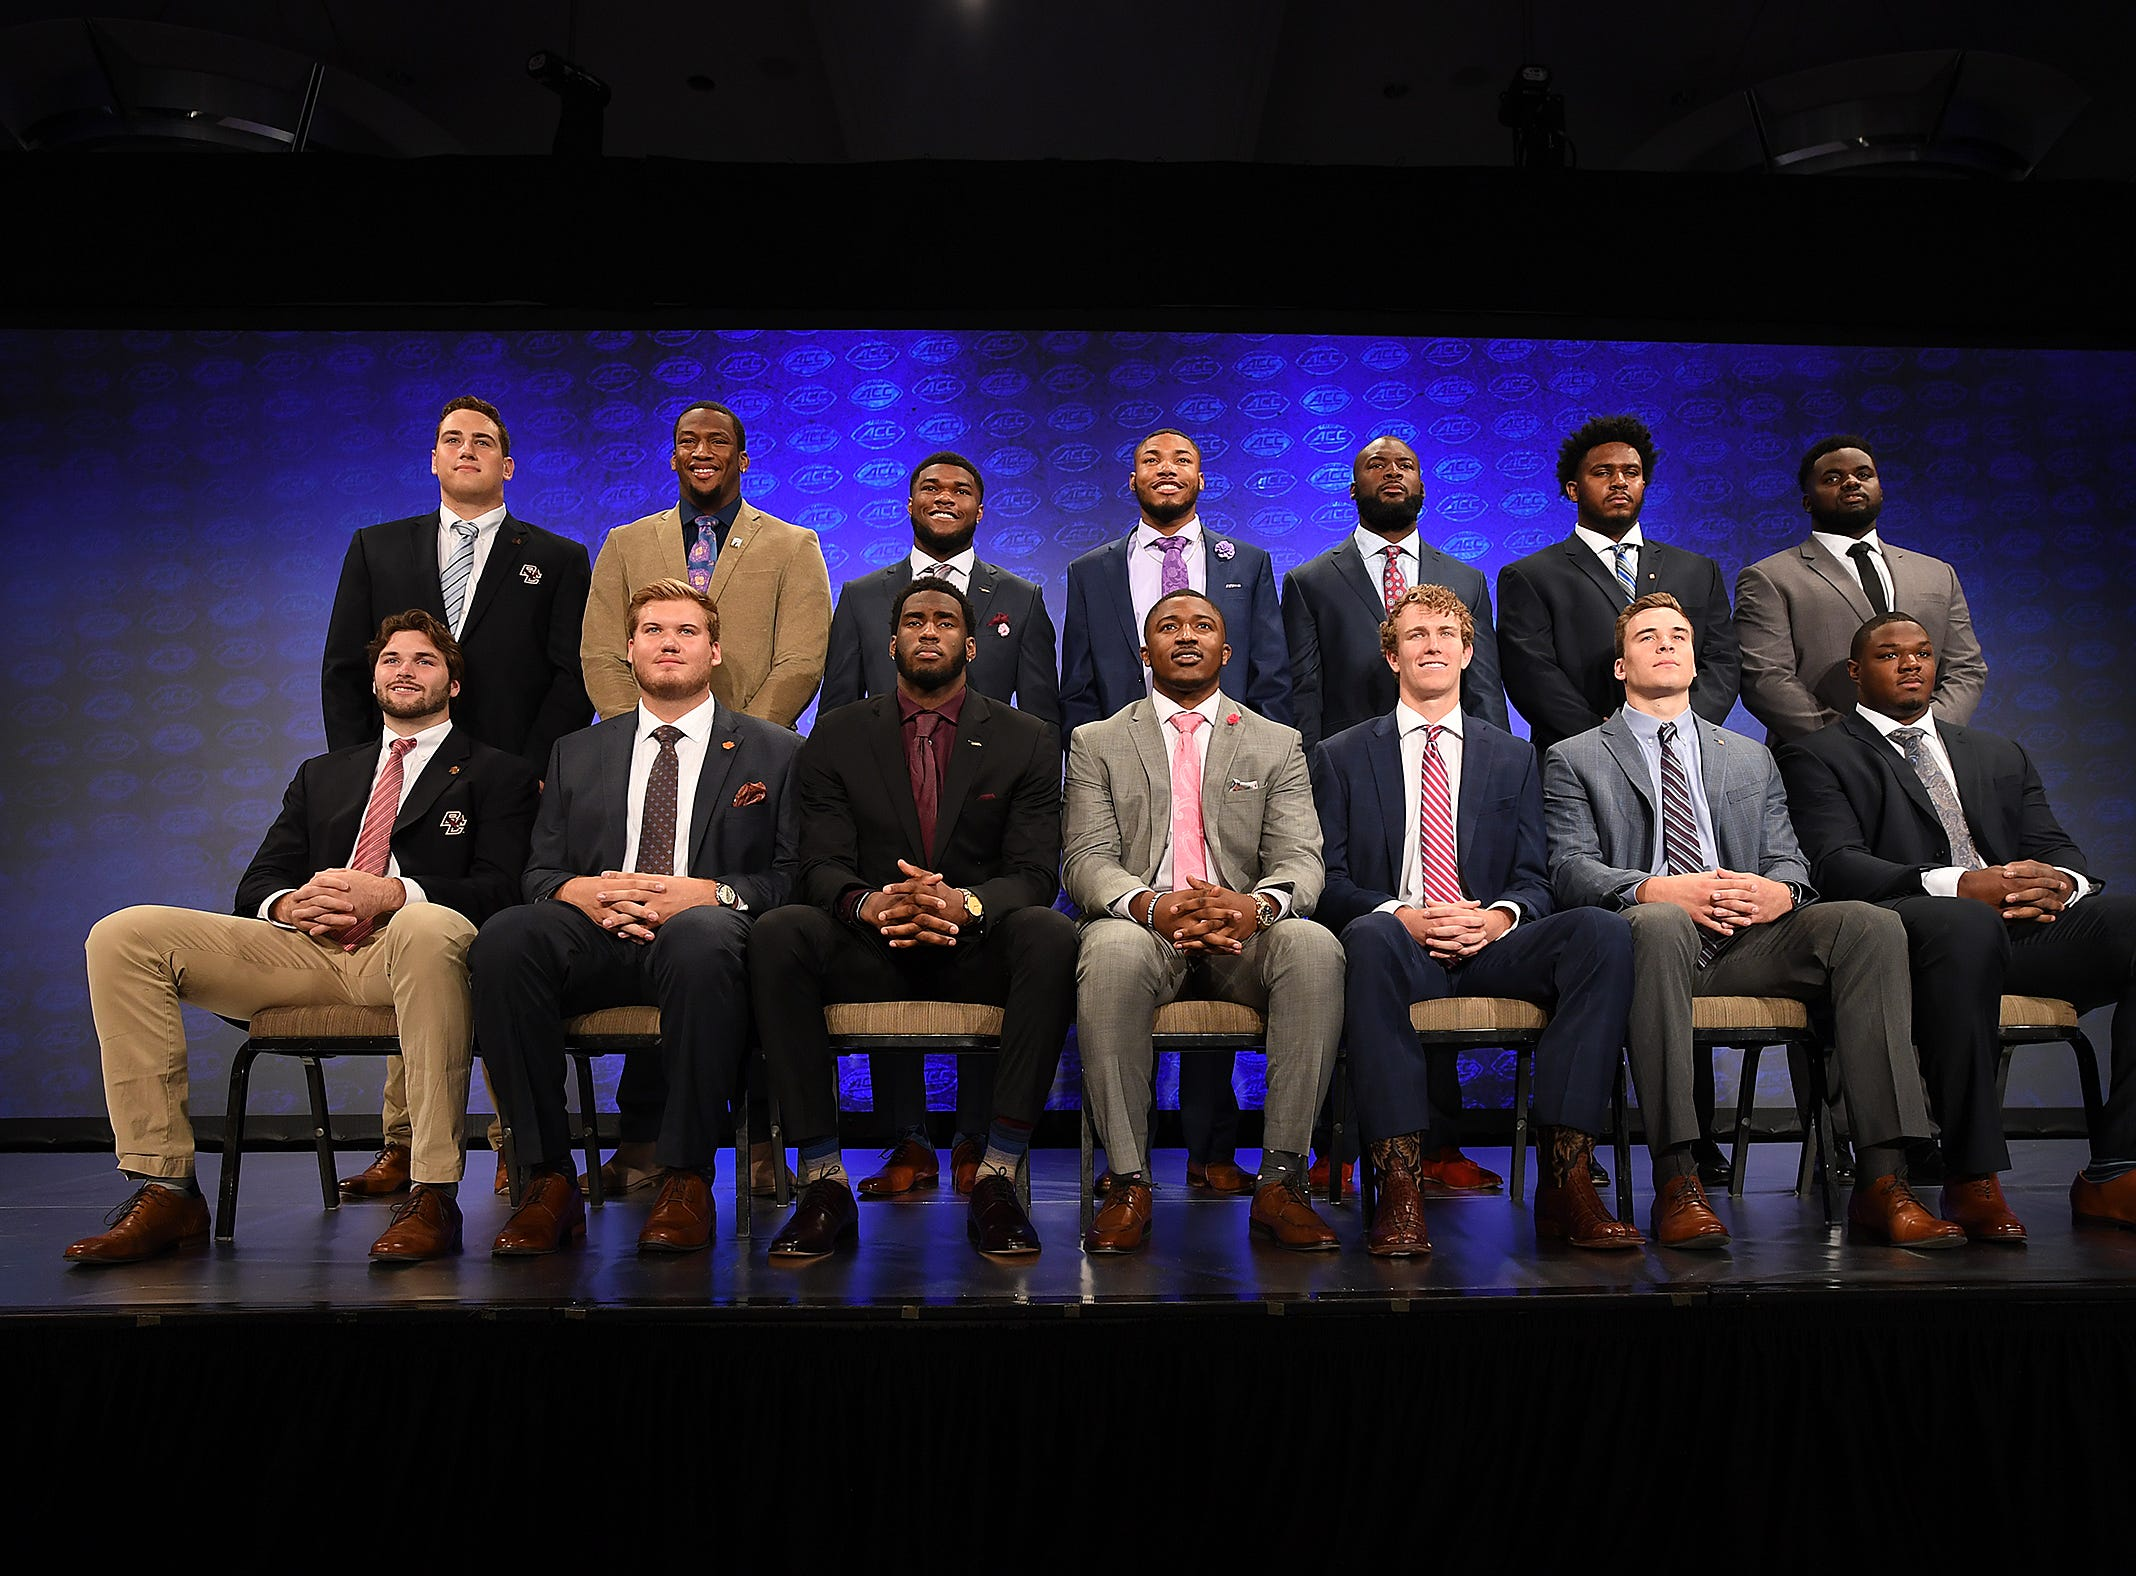 Players from the Atlantic Division pose for a group photo at the ACC Football Kickoff in Charlotte, N.C., Thursday, July 19, 2018.